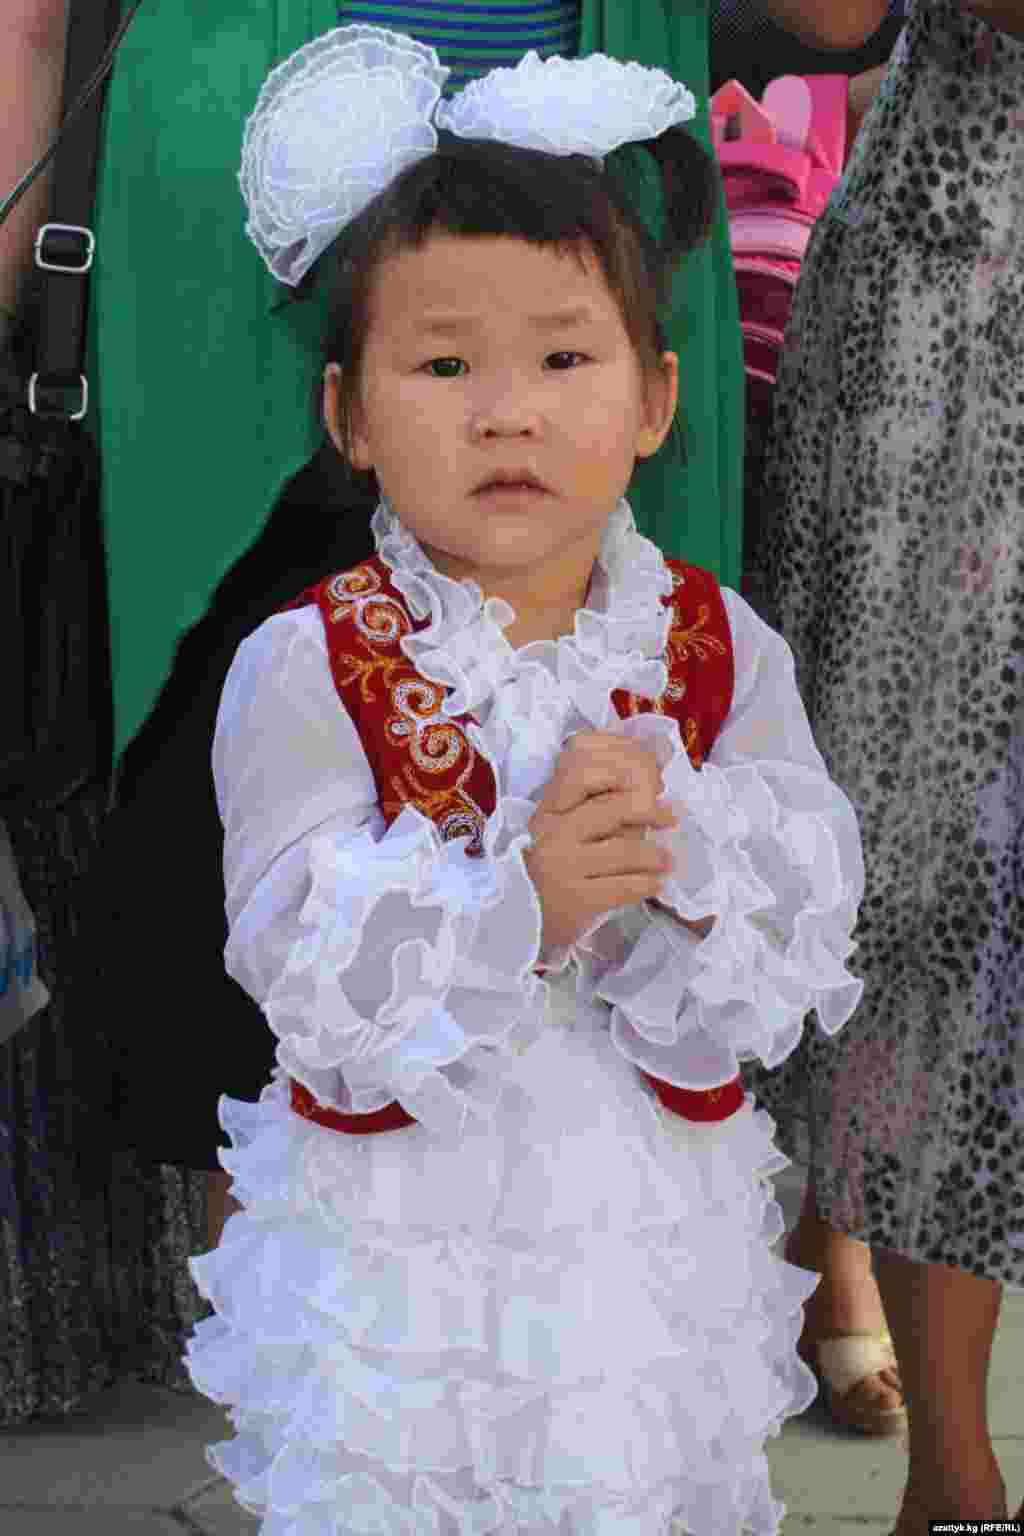 A first-grader attending a school celebration at School No. 82 at the Ala-Too settlement outside of Bishkek, Kyrgyzstan.